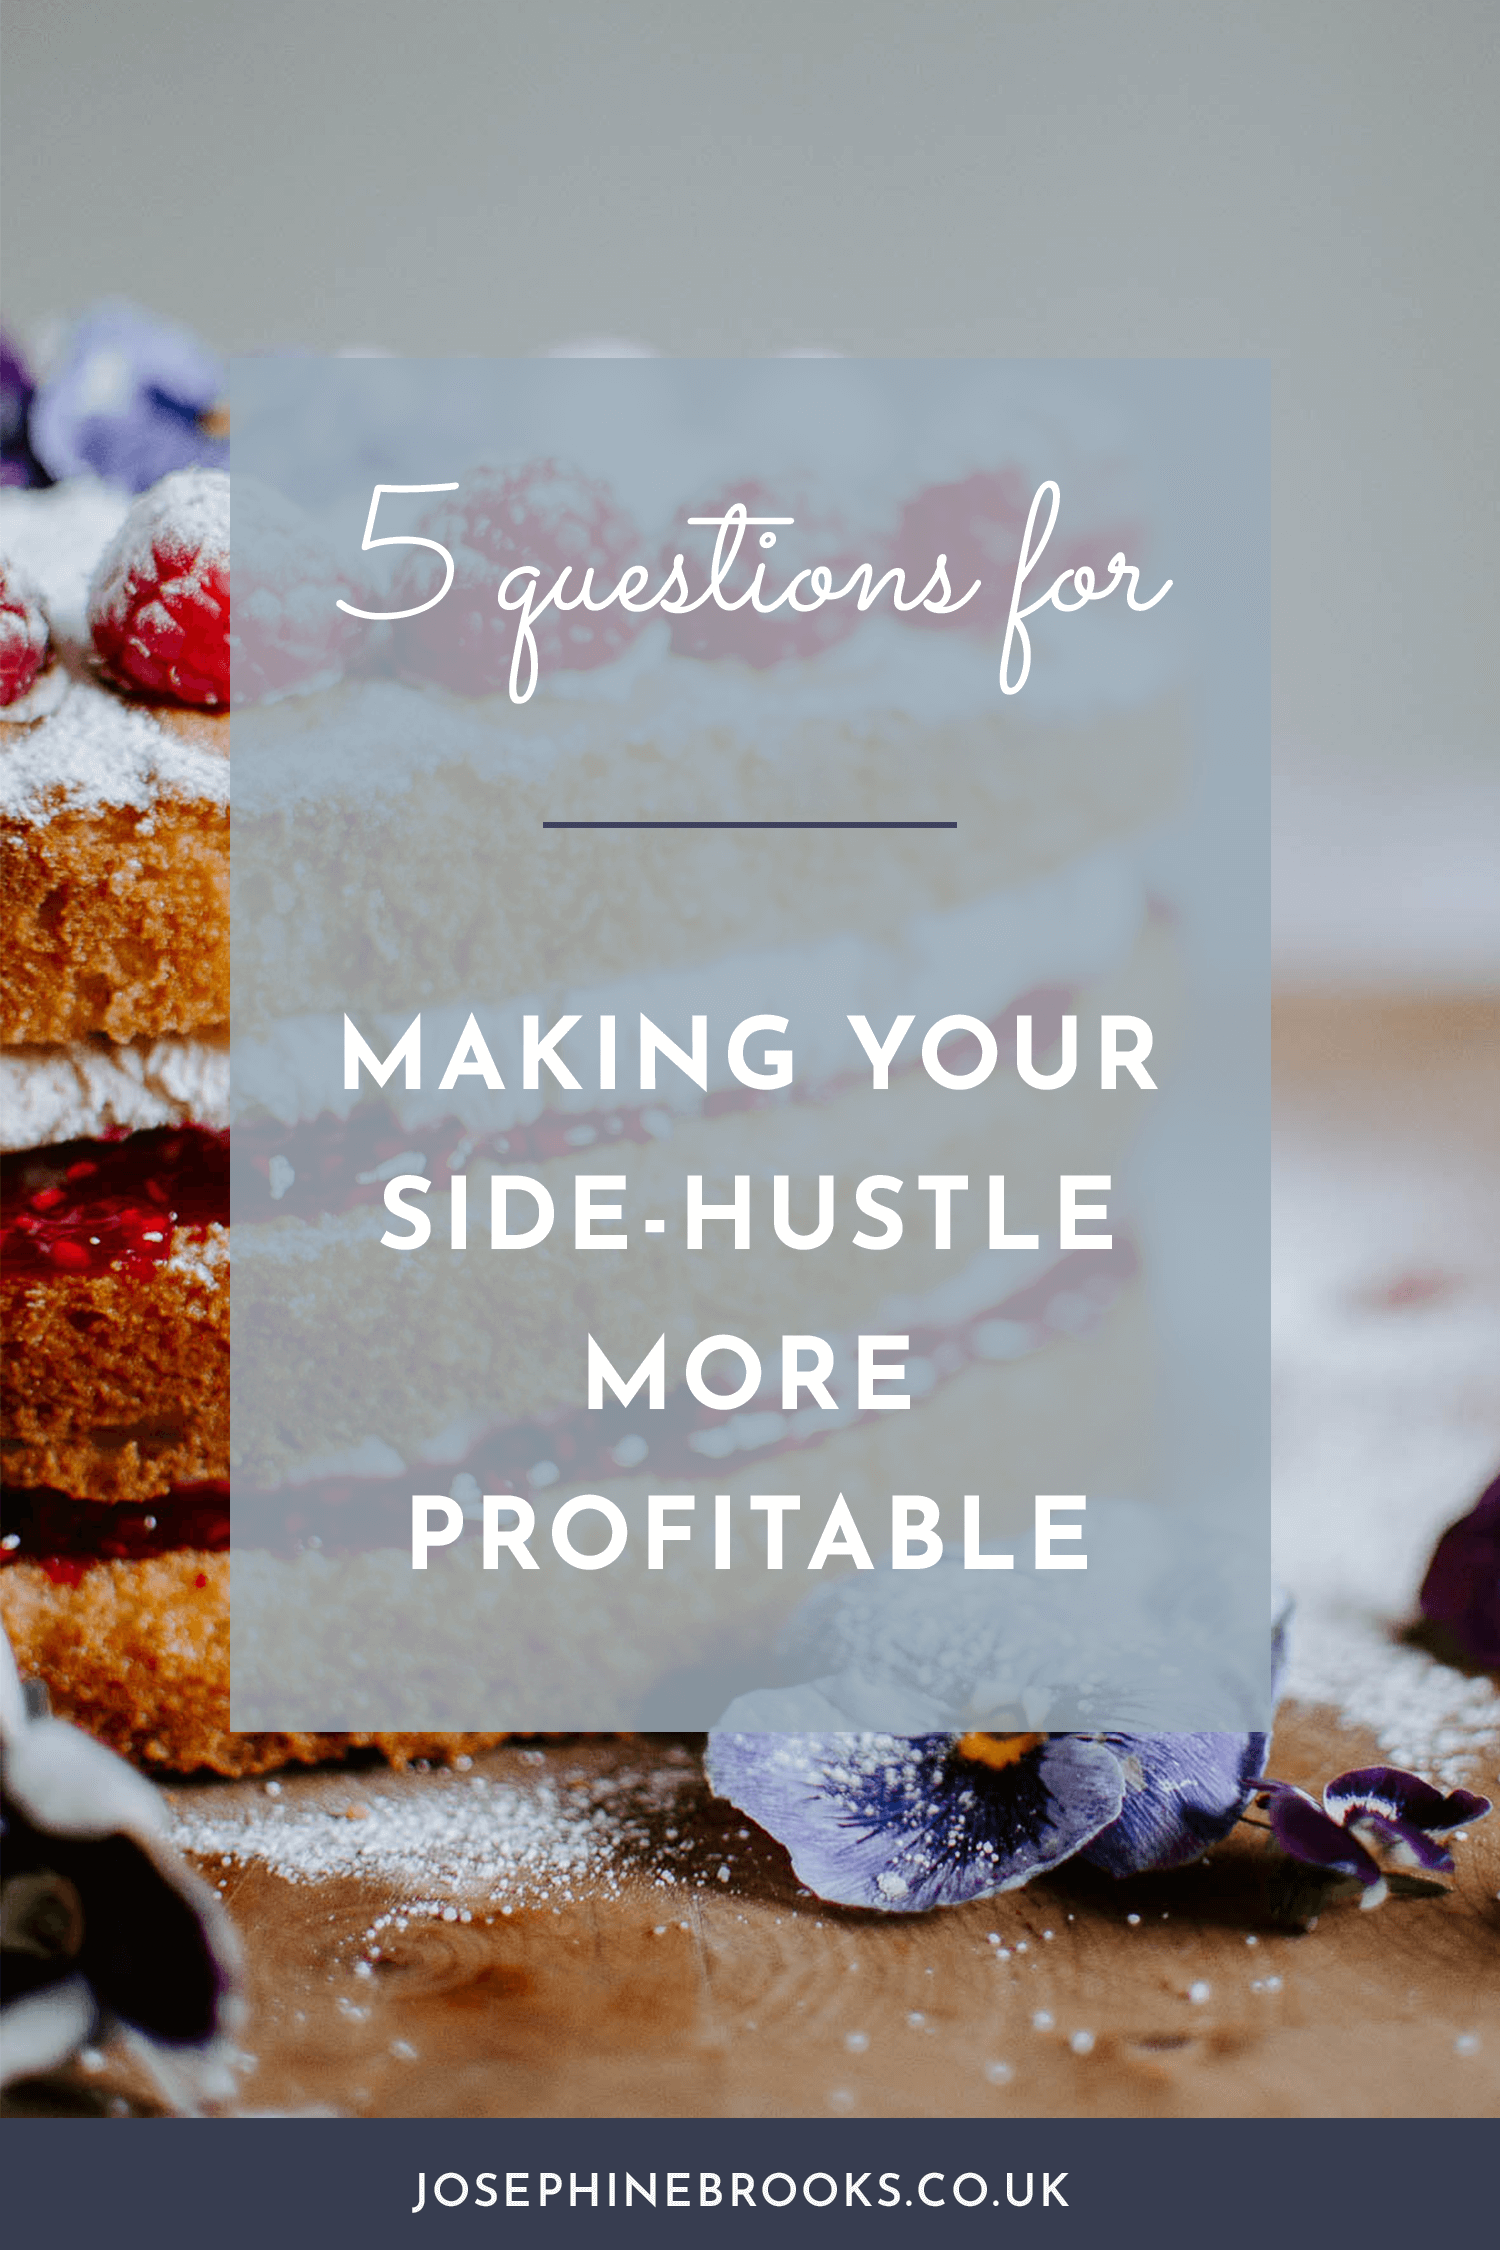 Making your business earn more, Increasing your business income, 5 questions for increasing your profitability, How to review your creative business product line and make it more profitable, How to make a profitable product line, Create profitable products | Josephine Brooks